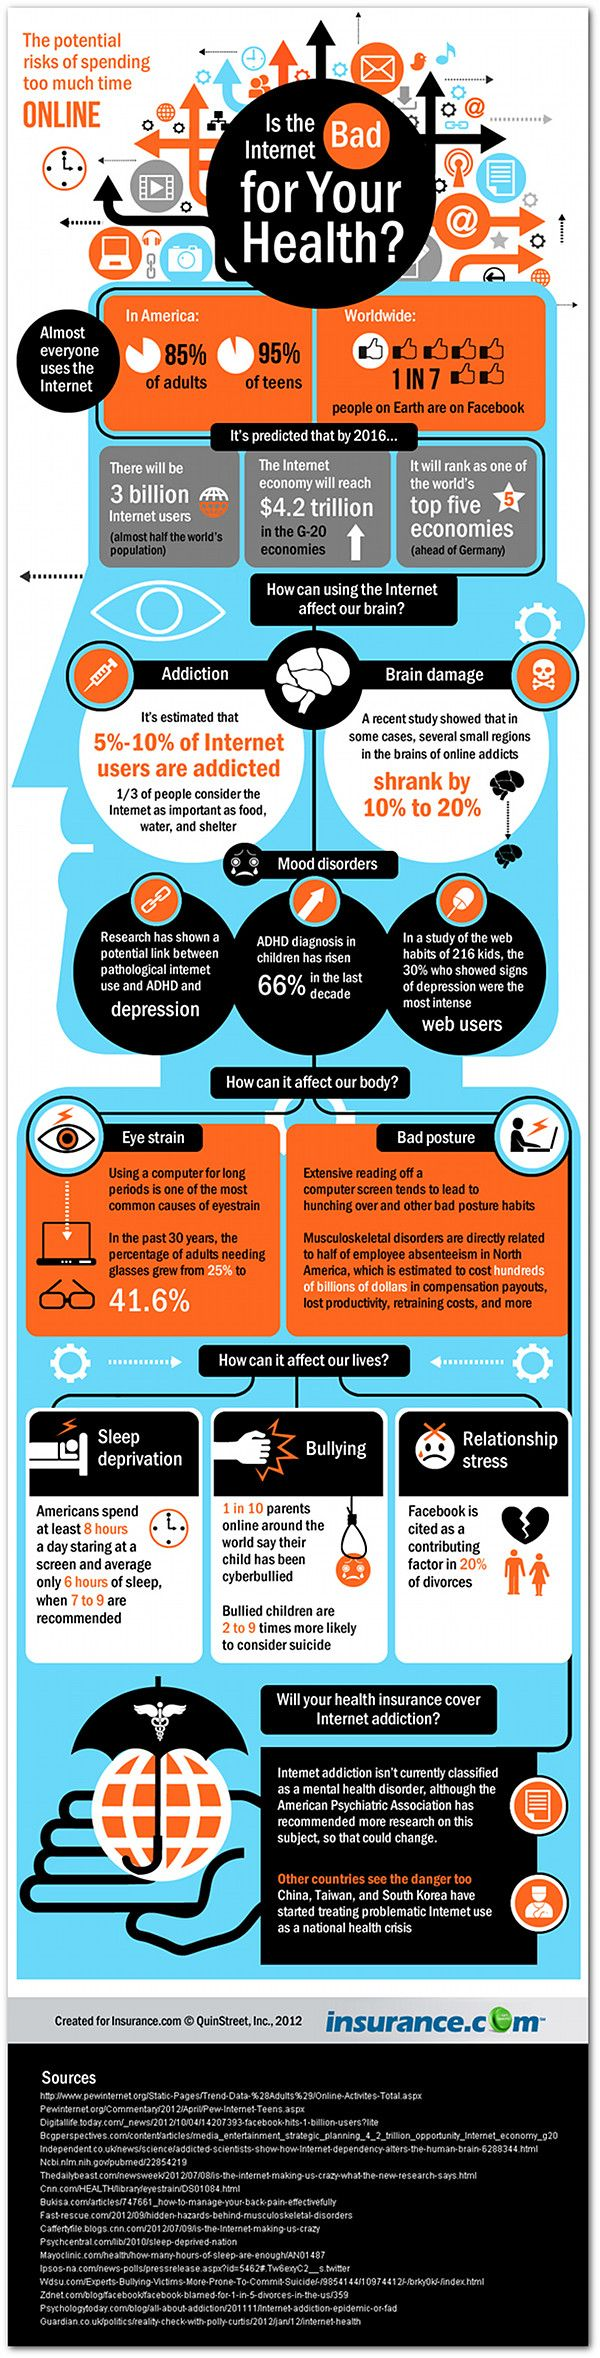 Infographic: The Internet is bad for your health via @Health Care Communication News #healthcare